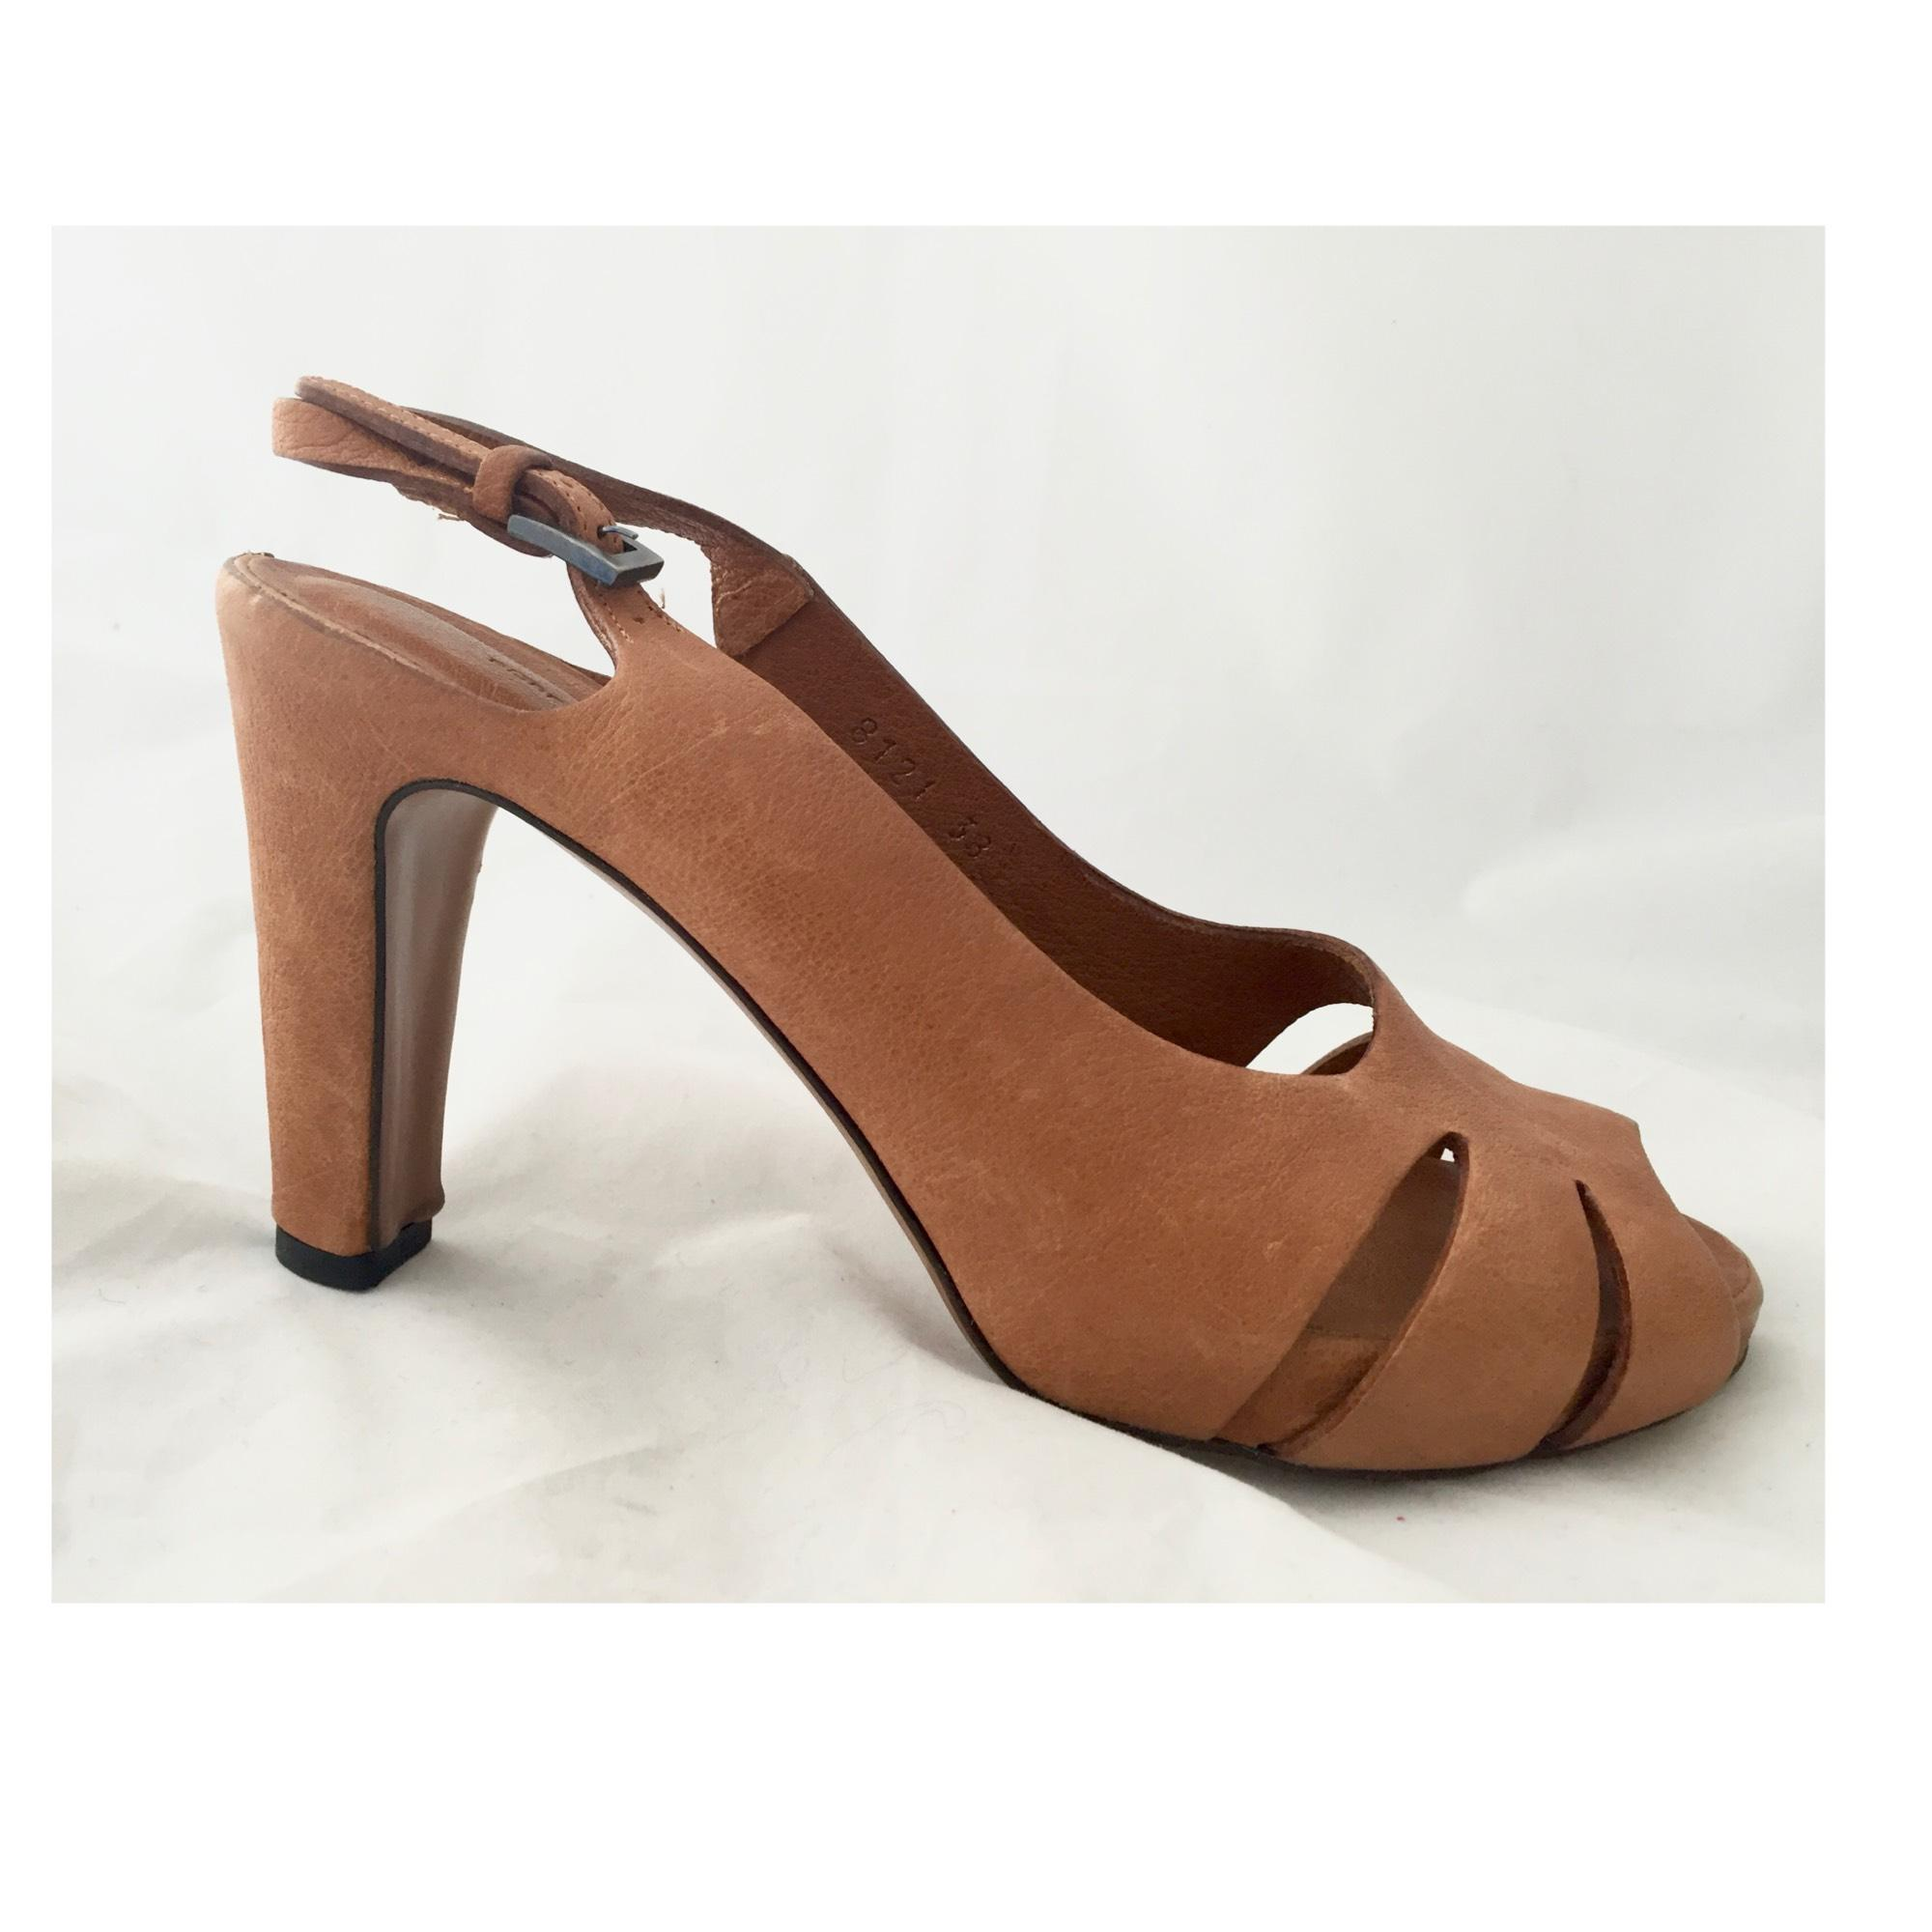 Roberto Del Carlo Platform Peep-Toe Pumps eastbay for sale new styles cheap online KKnWWkgBv3